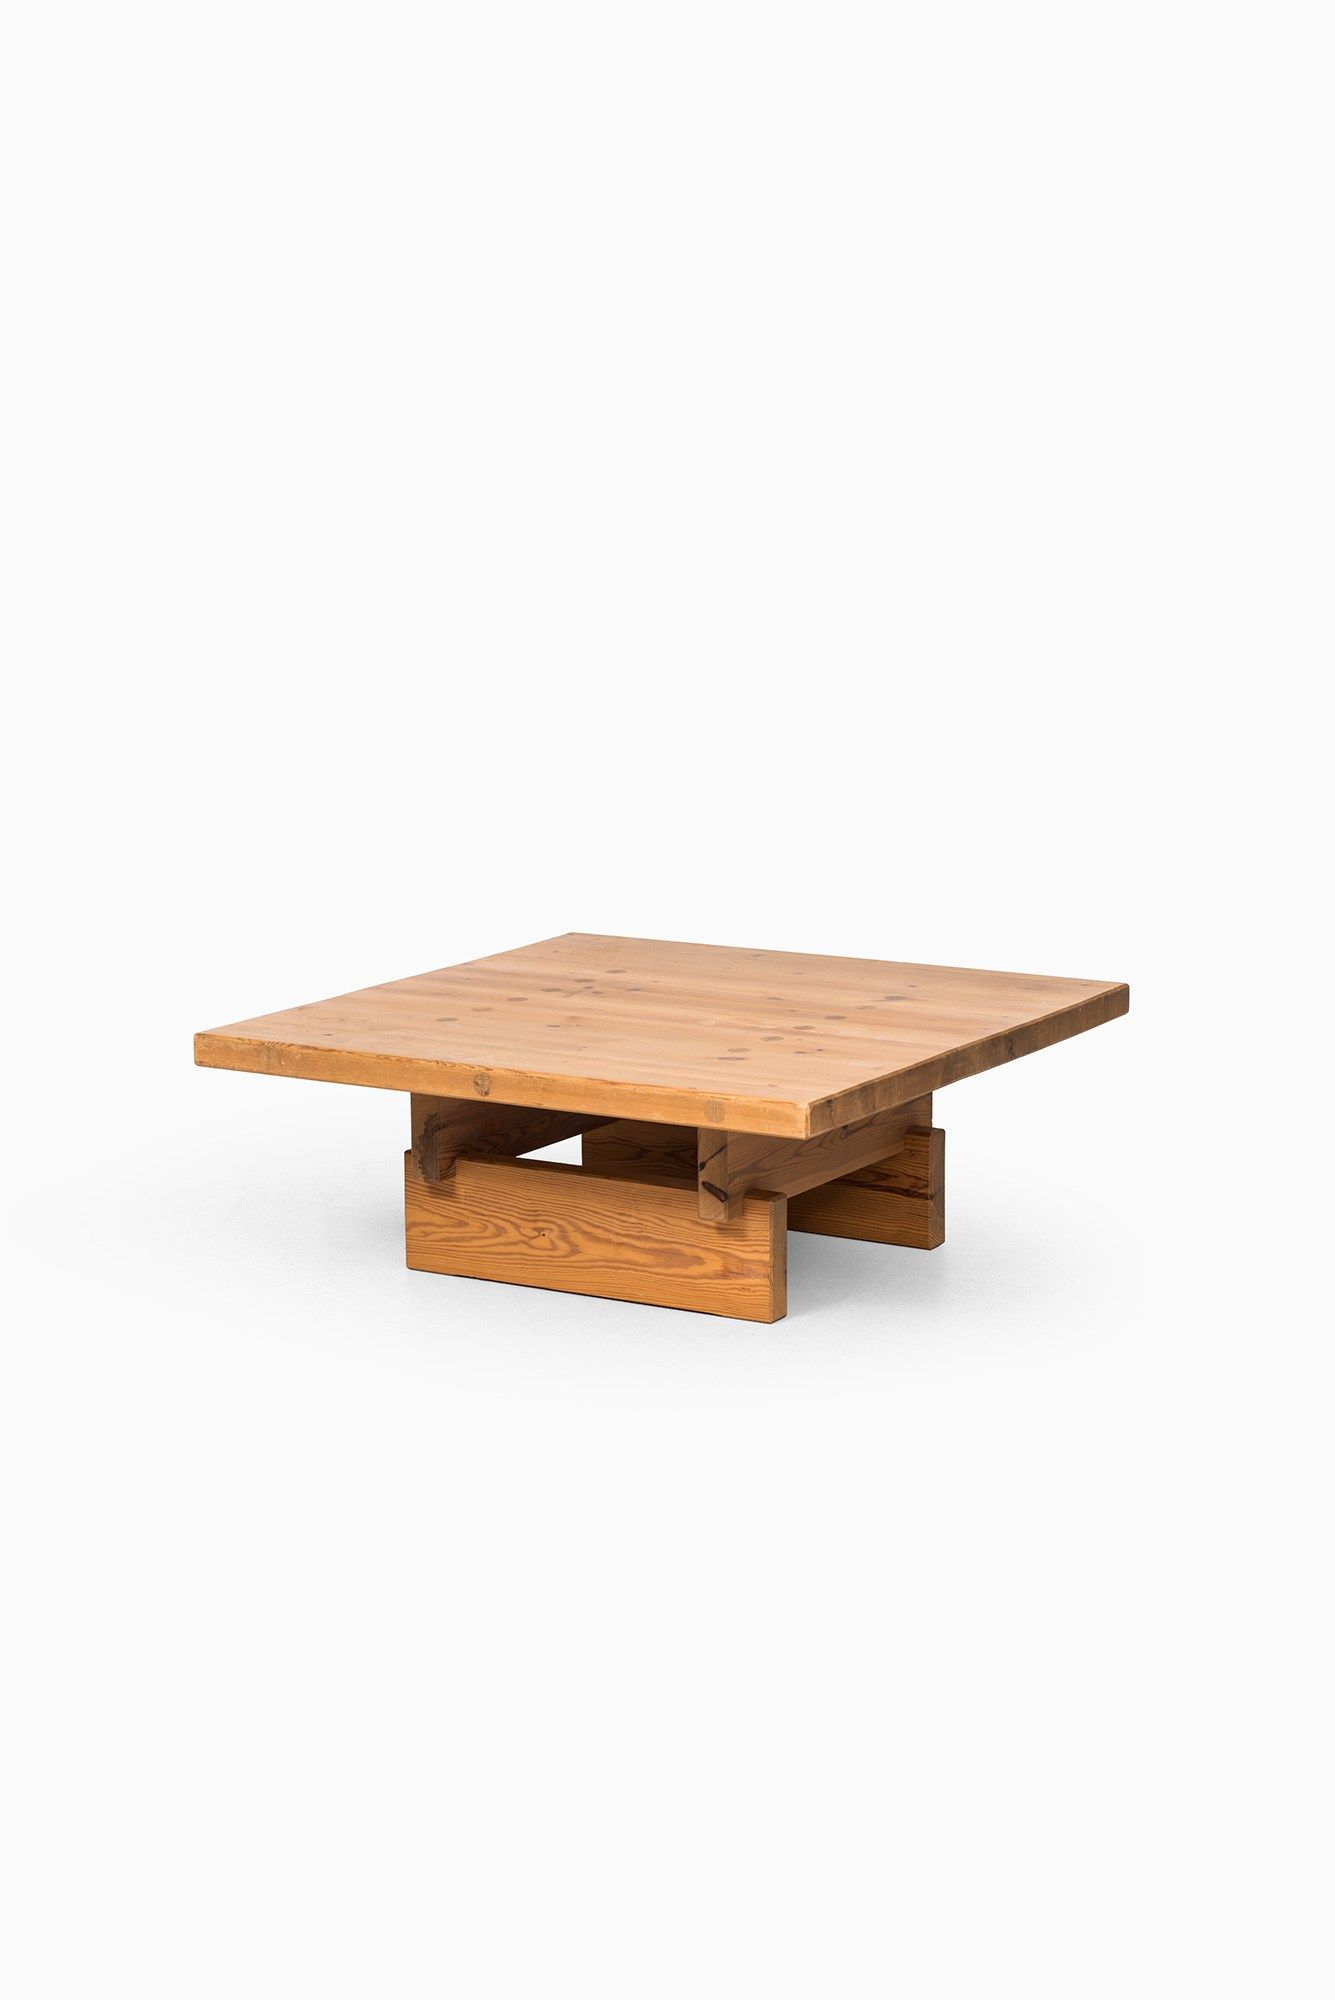 Roland Williamsson Coffee Table In Solid Pine At Studio Schalling